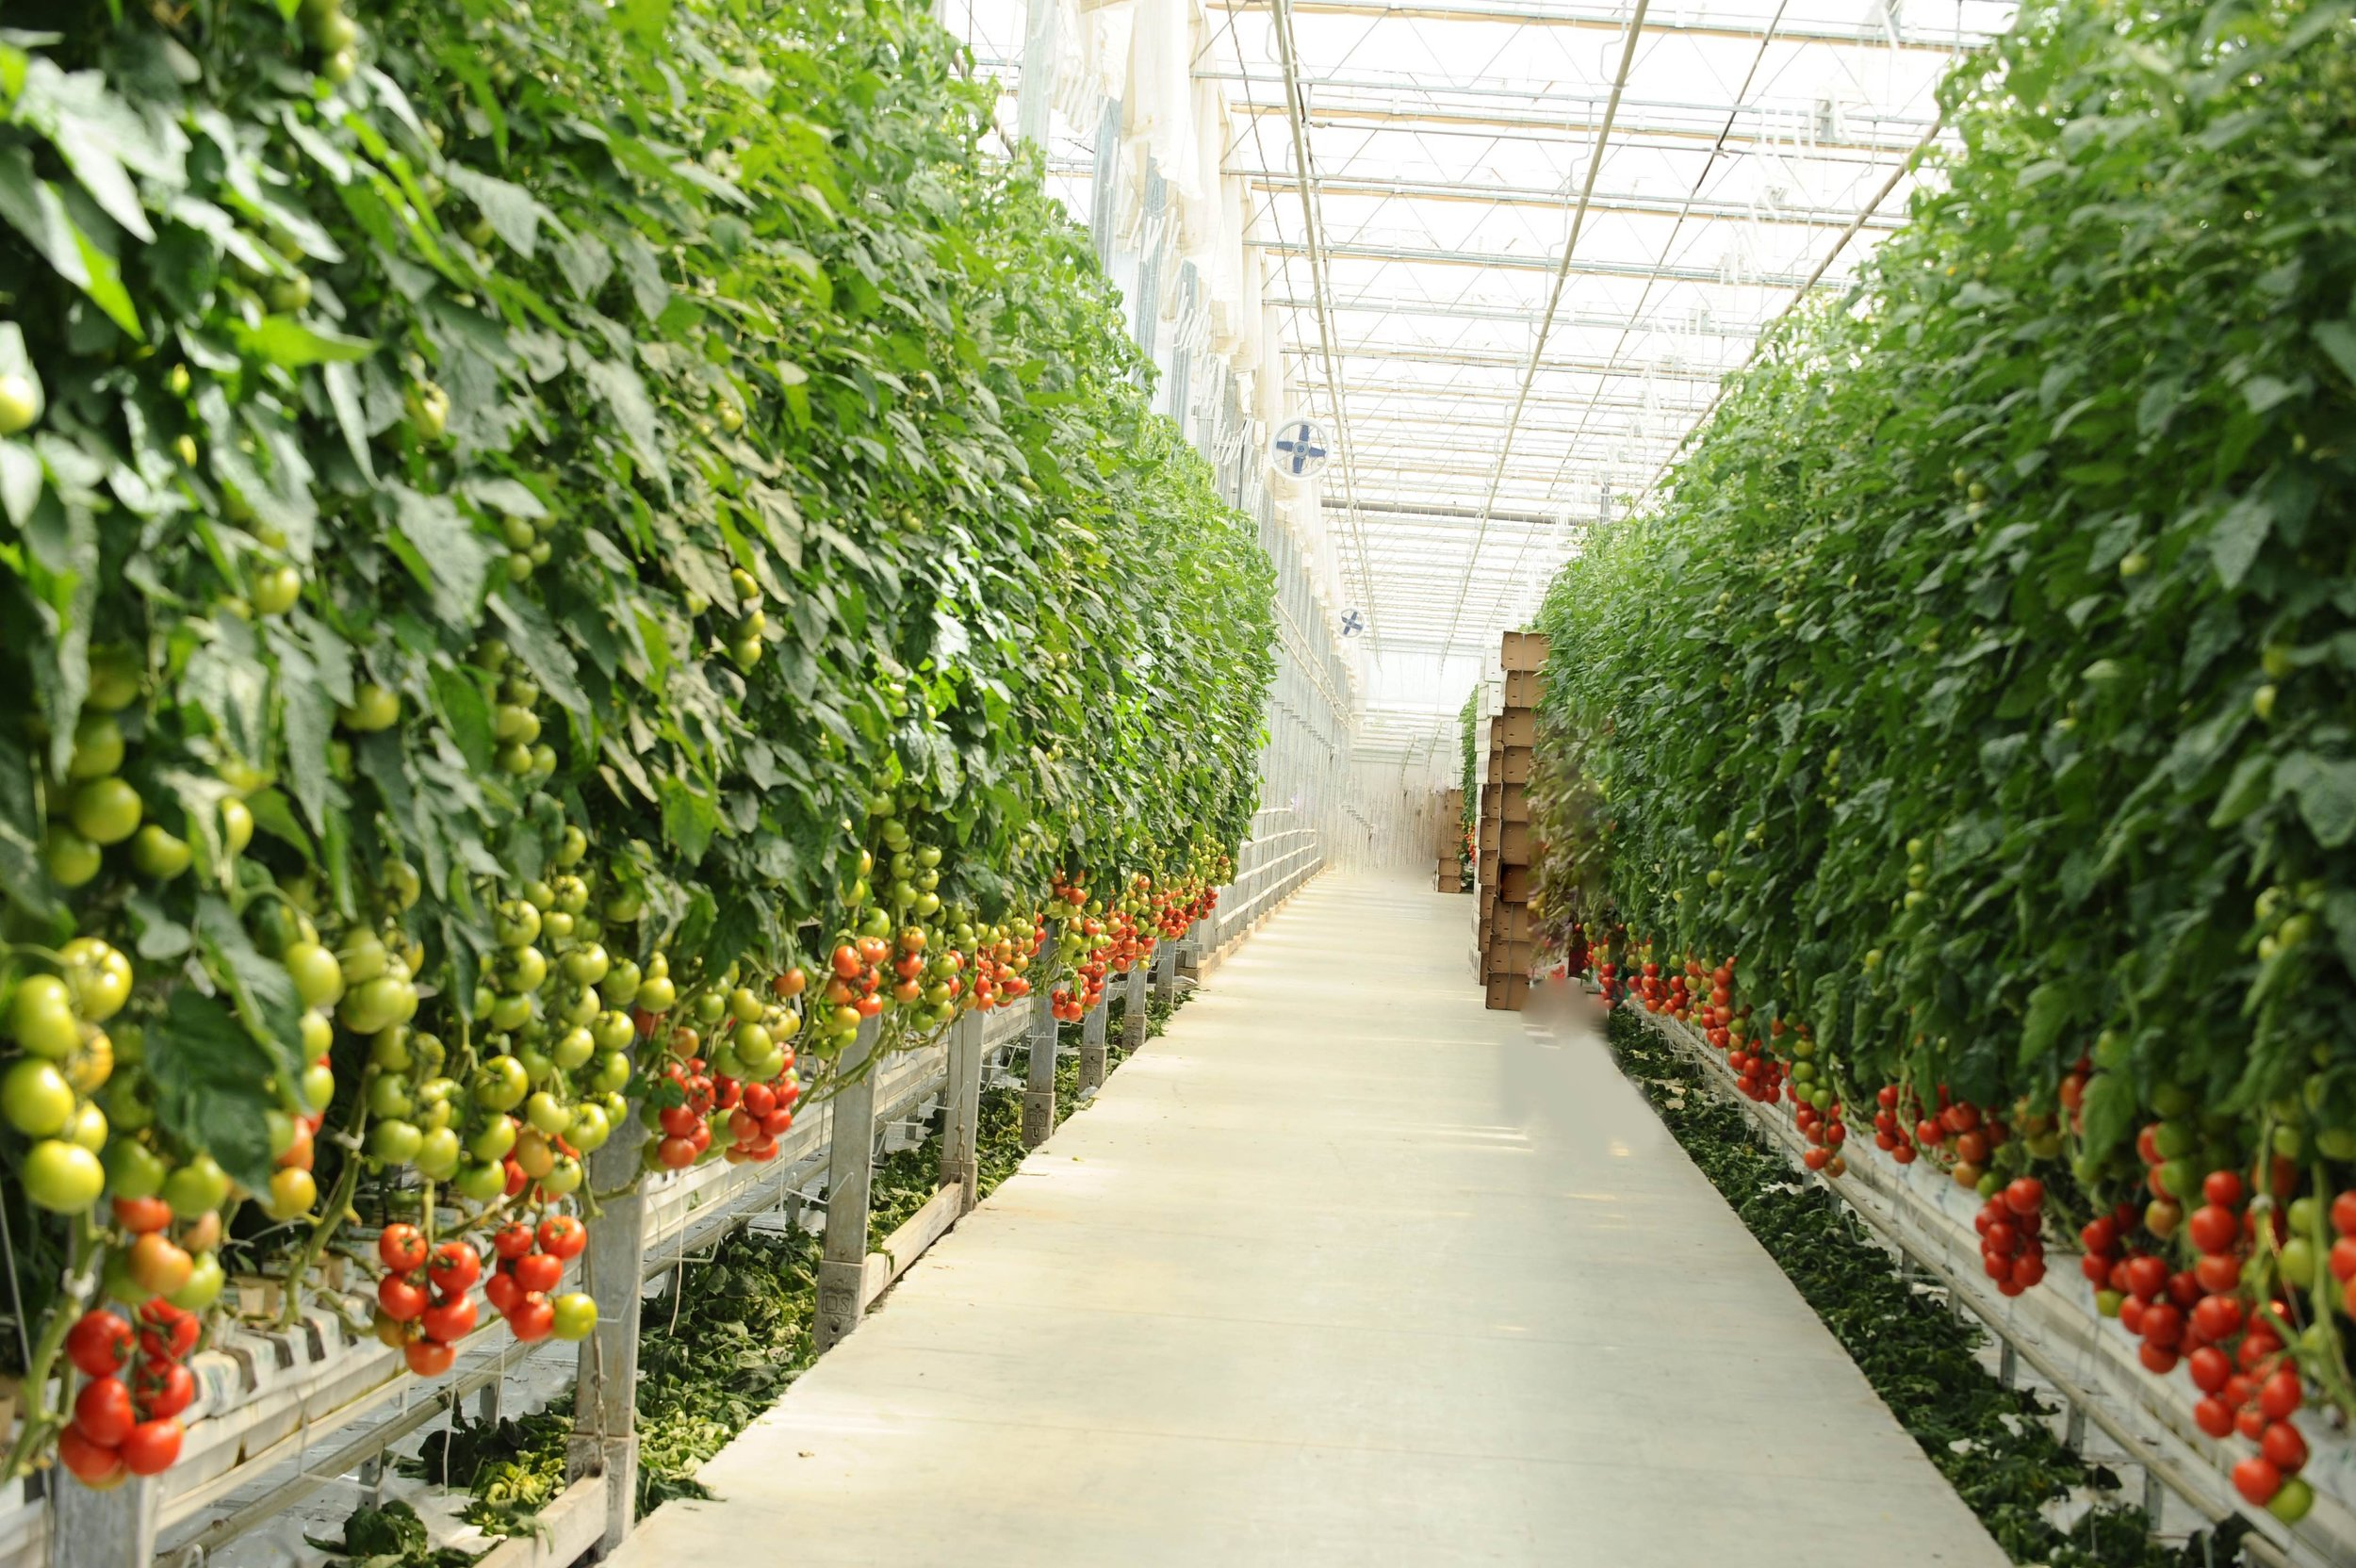 Image  : a hydroponic tomato farm with rows of monoculture (source stock), click to enlarge.